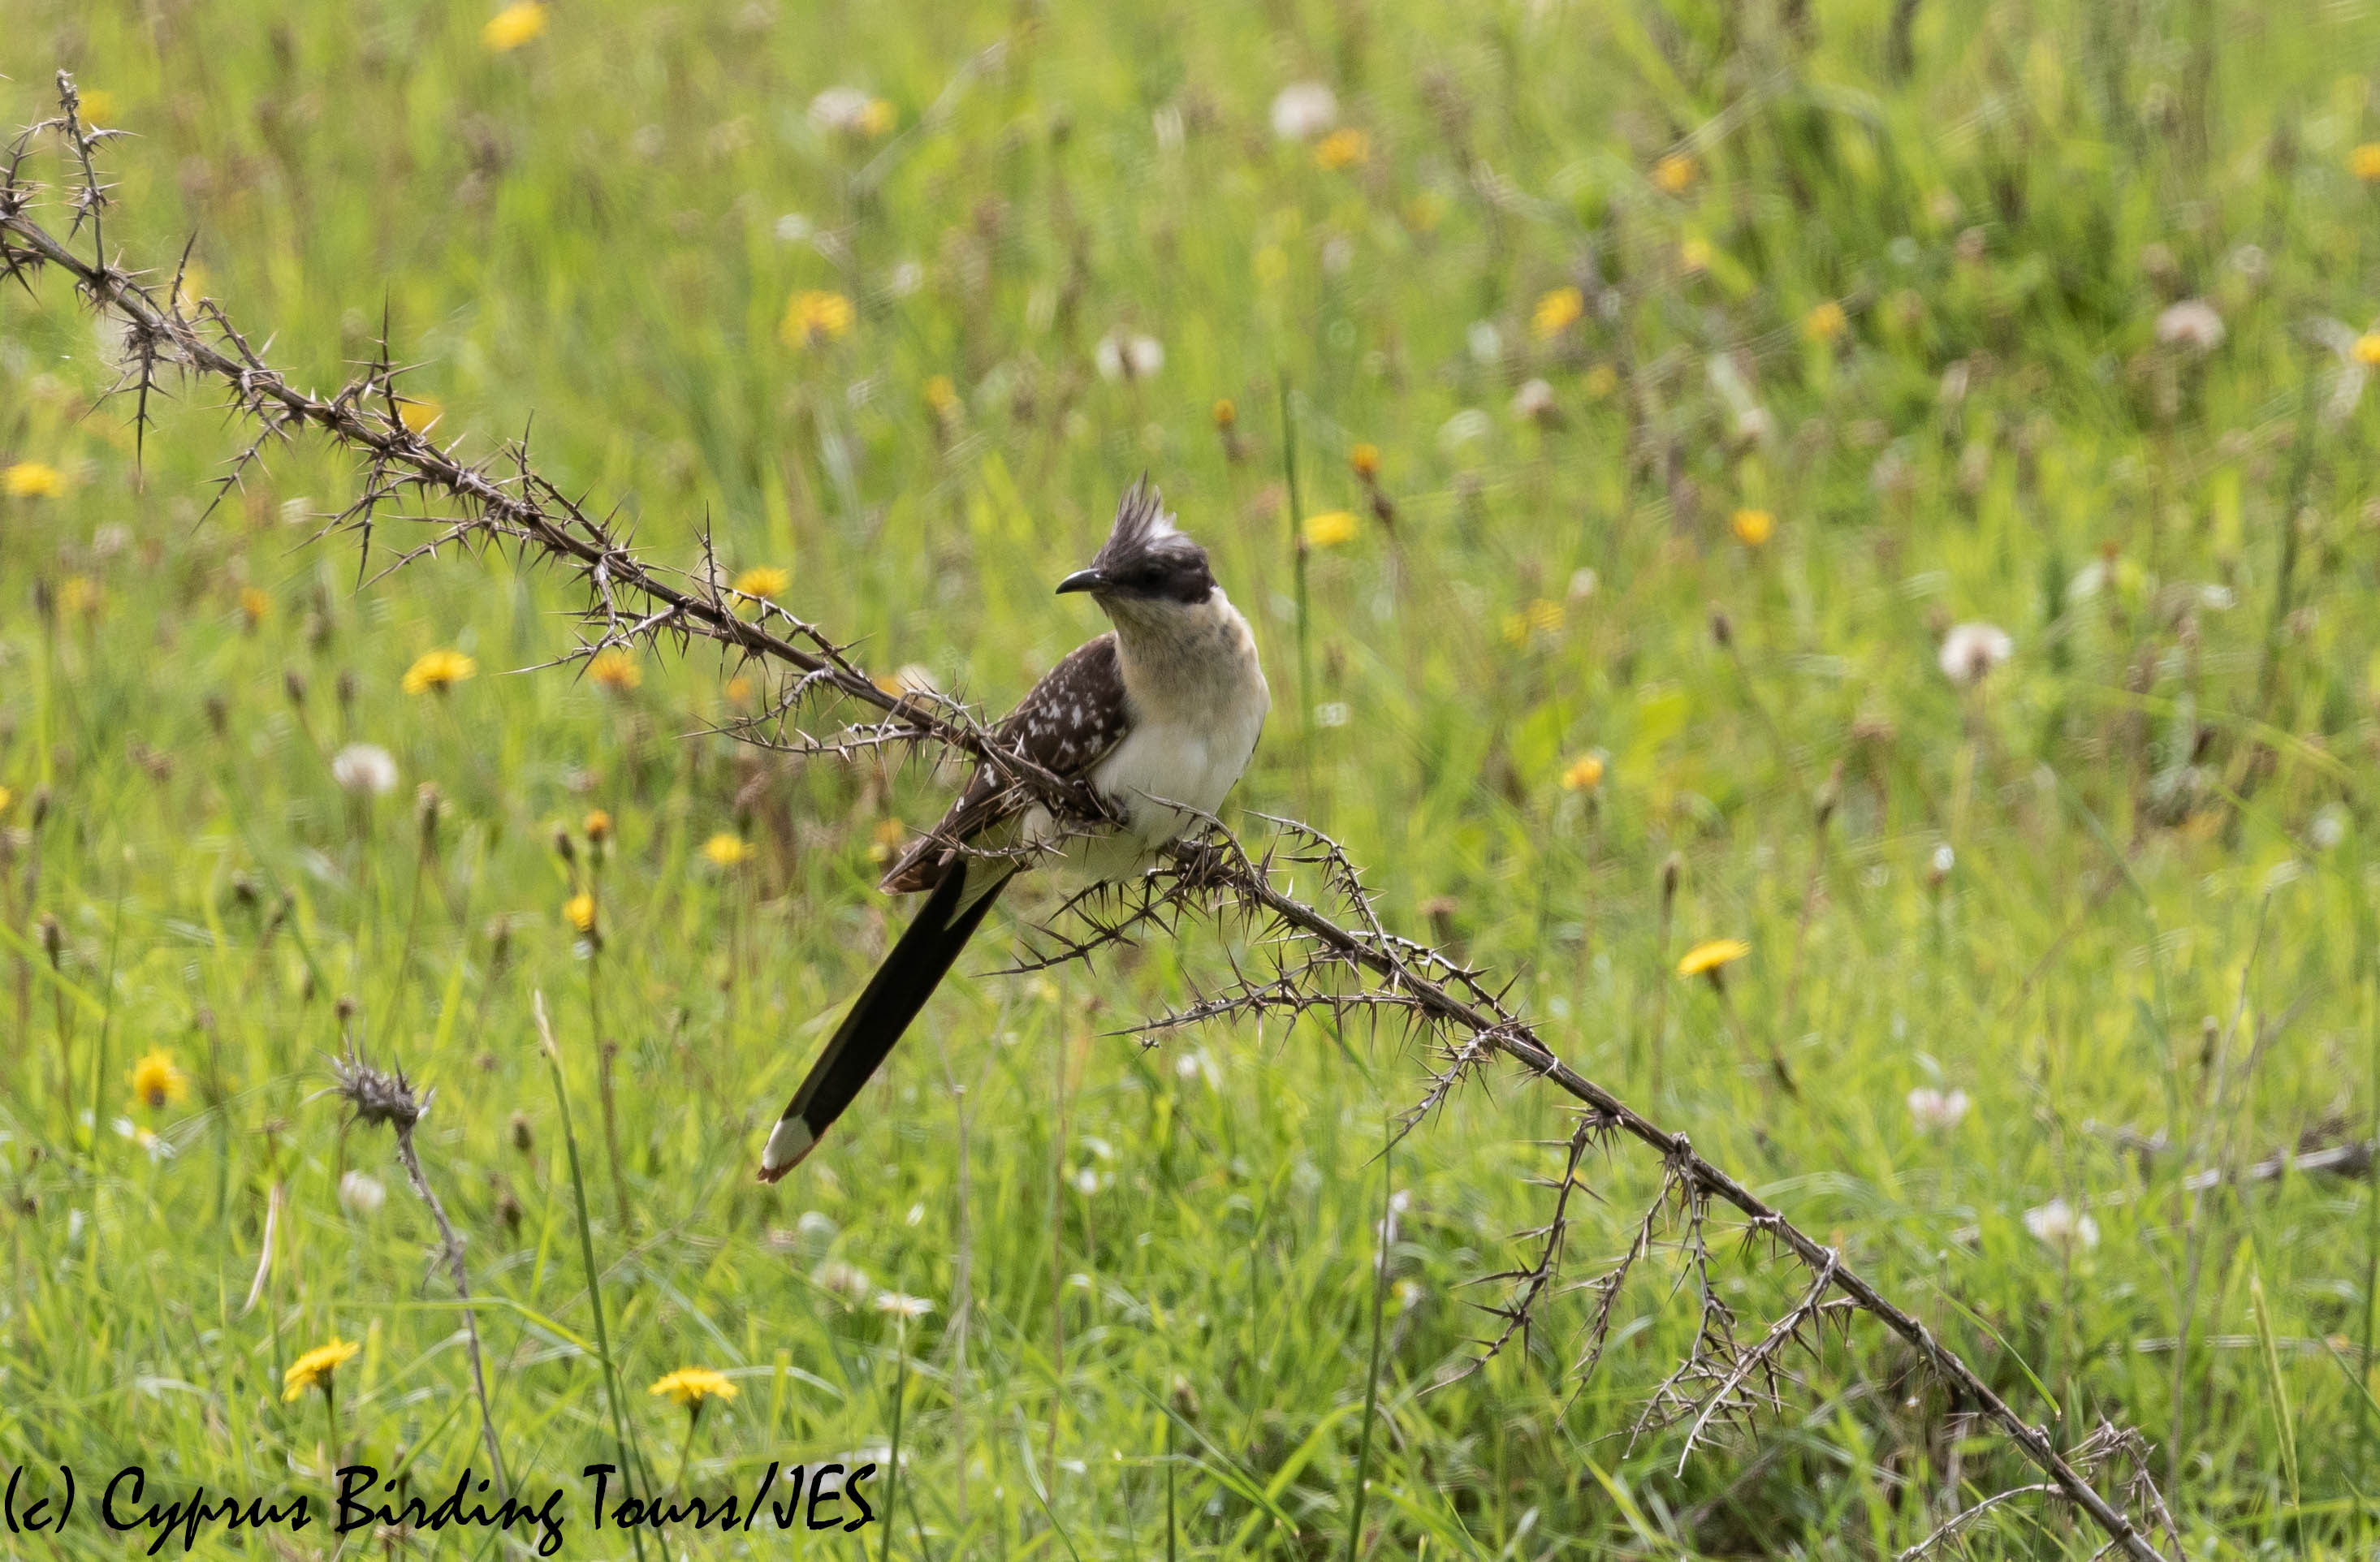 Great Spotted Cuckoo, Anarita Park, 14th April 2019 (c) Cyprus Birding Tours